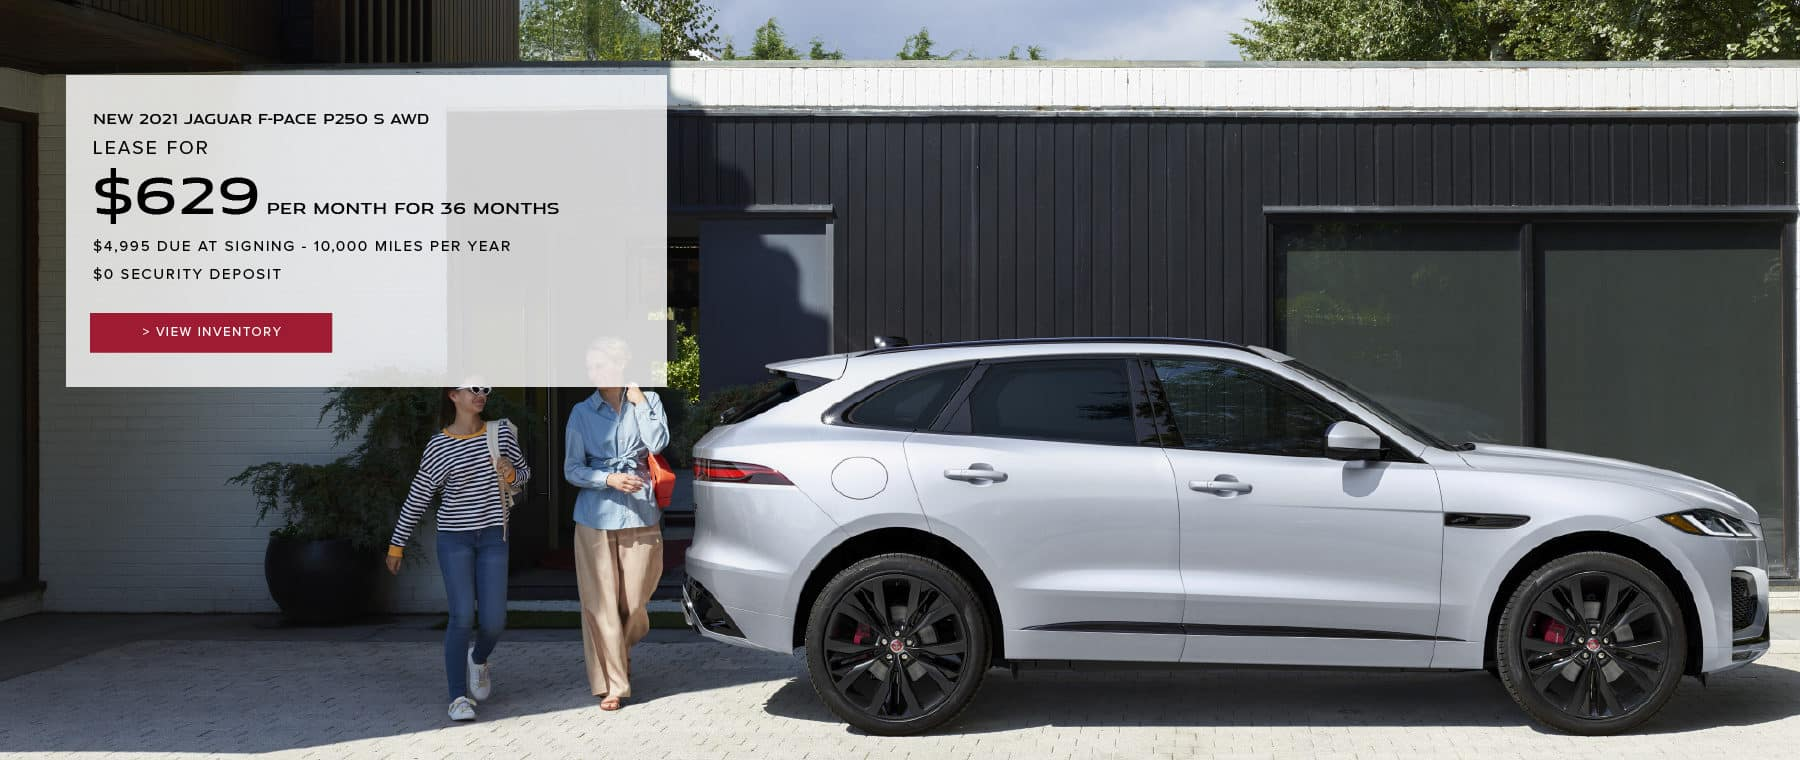 NEW 2021 JAGUAR E-PACE SE. $559 PER MONTH. 36 MONTH LEASE TERM. $3,495 CASH DUE AT SIGNING. $0 SECURITY DEPOSIT. 10,000 MILES PER YEAR. EXCLUDES RETAILER FEES, TAXES, TITLE AND REGISTRATION FEES, PROCESSING FEE AND ANY EMISSION TESTING CHARGE. OFFER ENDS 6/30/2021. VIEW INVENTORY. WHITE JAGUAR E-PACE DRIVING THROUGH CITY.